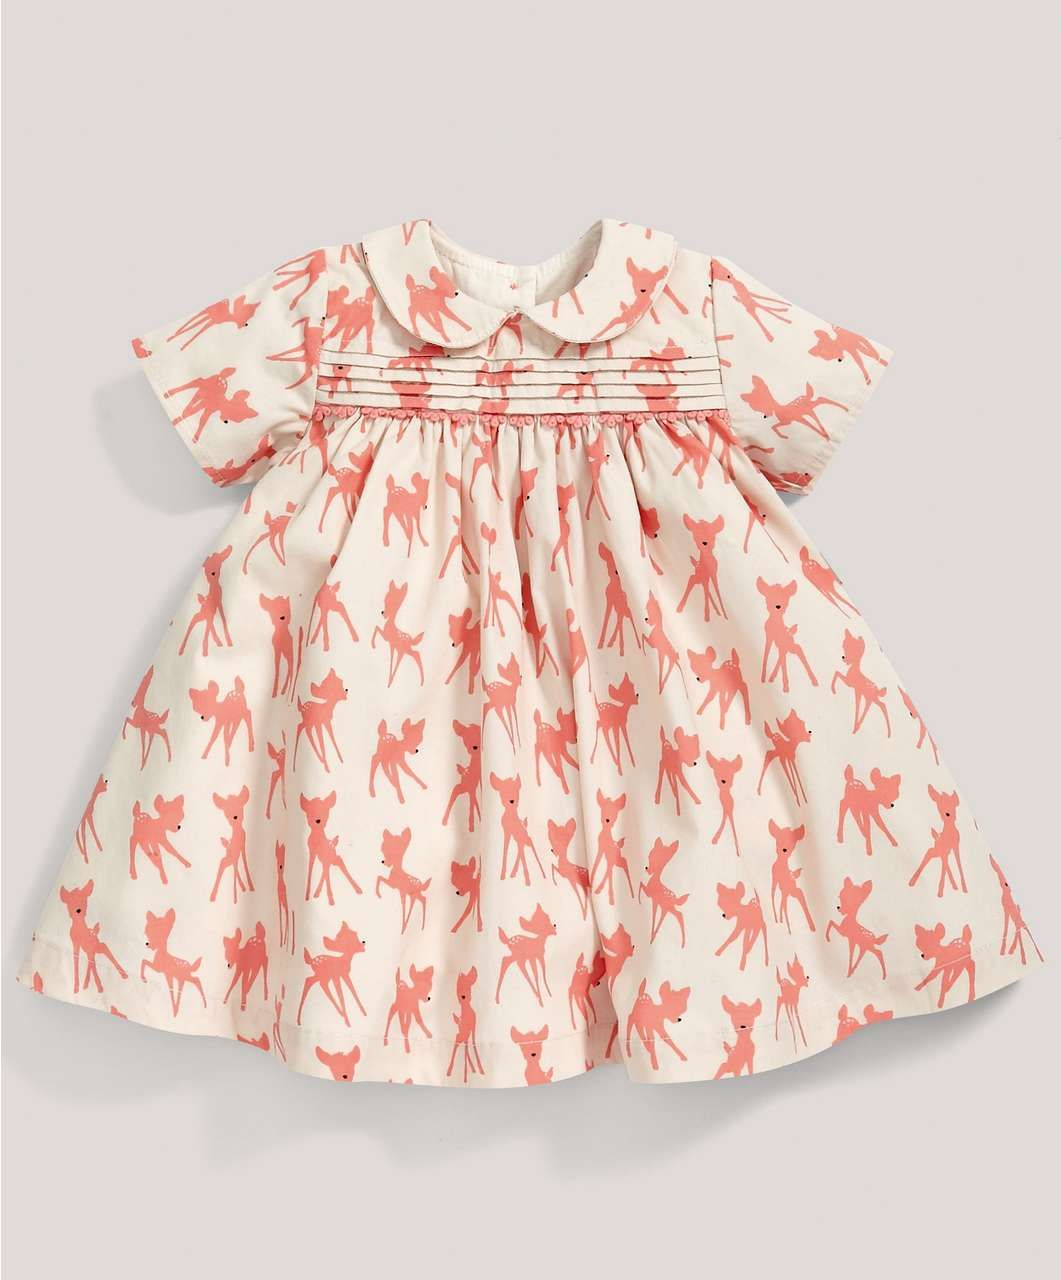 Mamas And Papas Baby Girl Top And Floral Skirt Set Size 6-9 Months